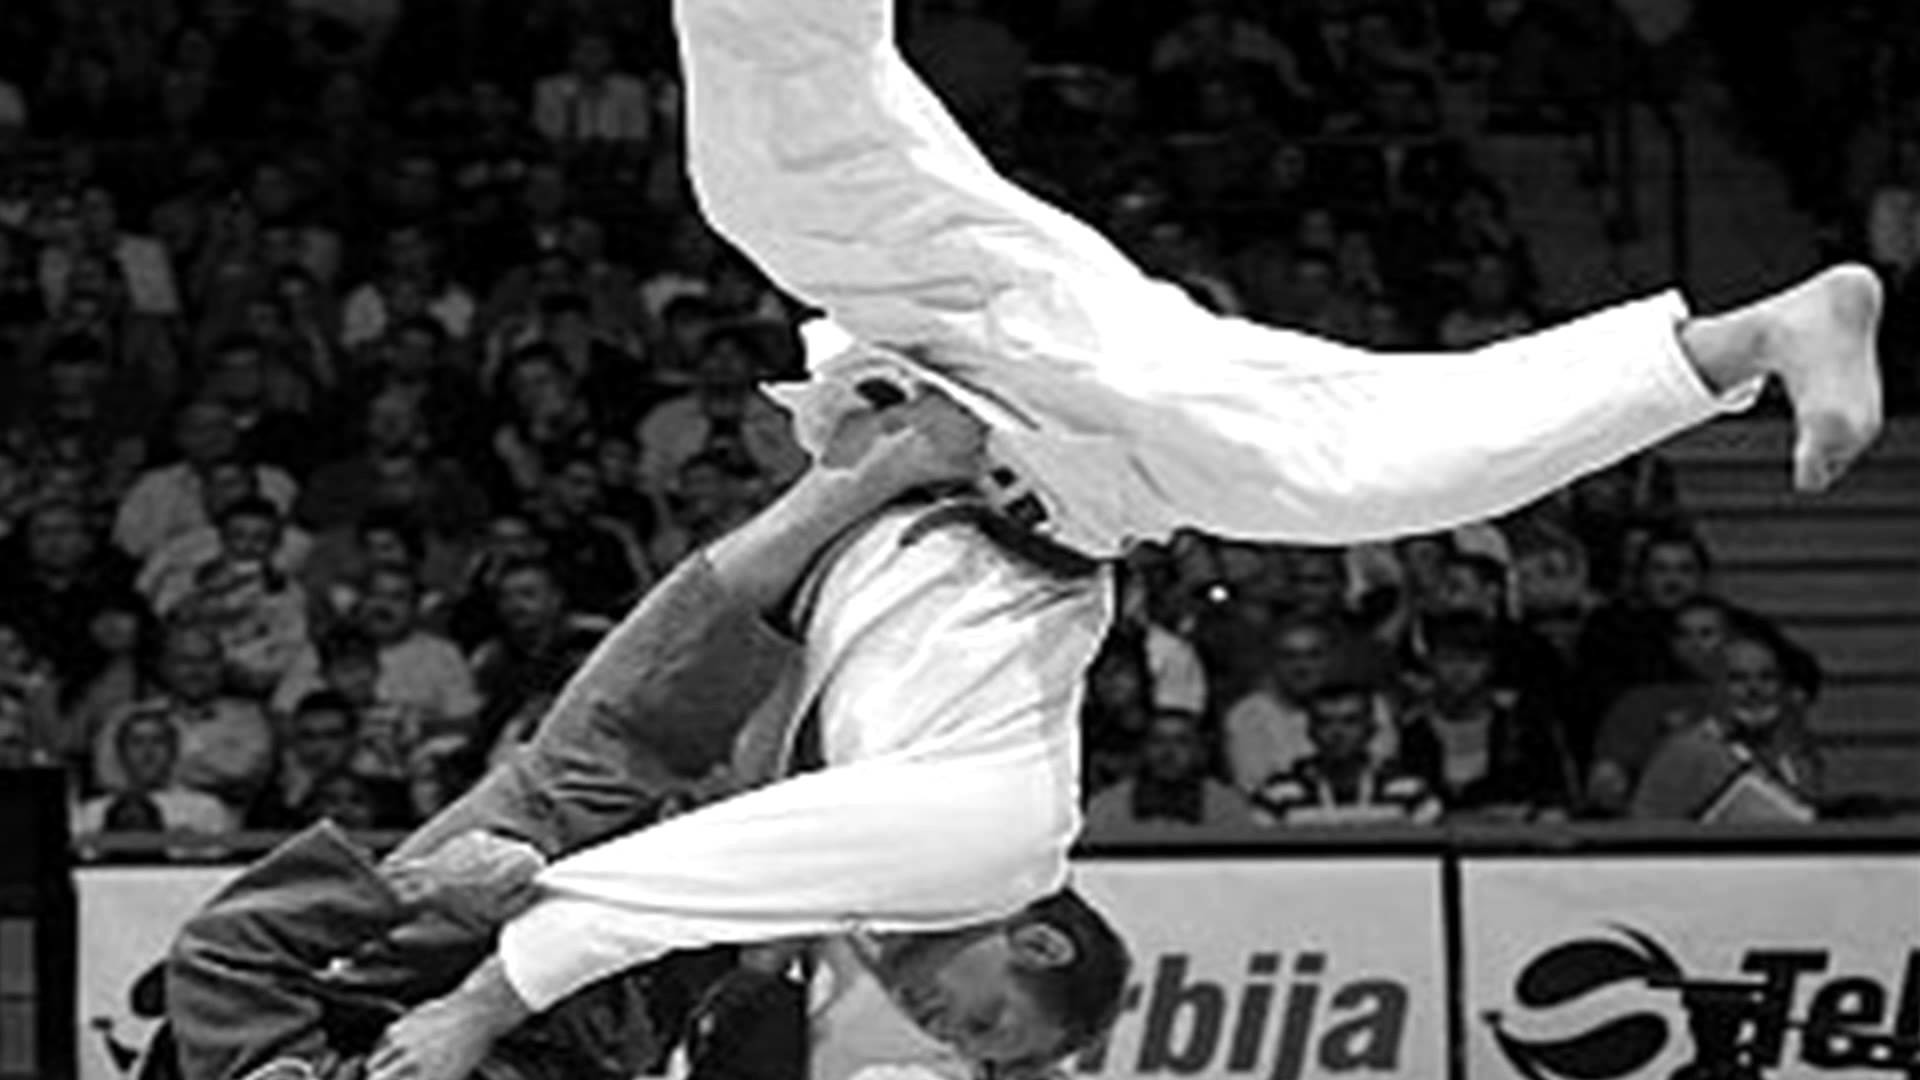 Iphone Quote Wallpapers Hd Judo Wallpaper 59 Images